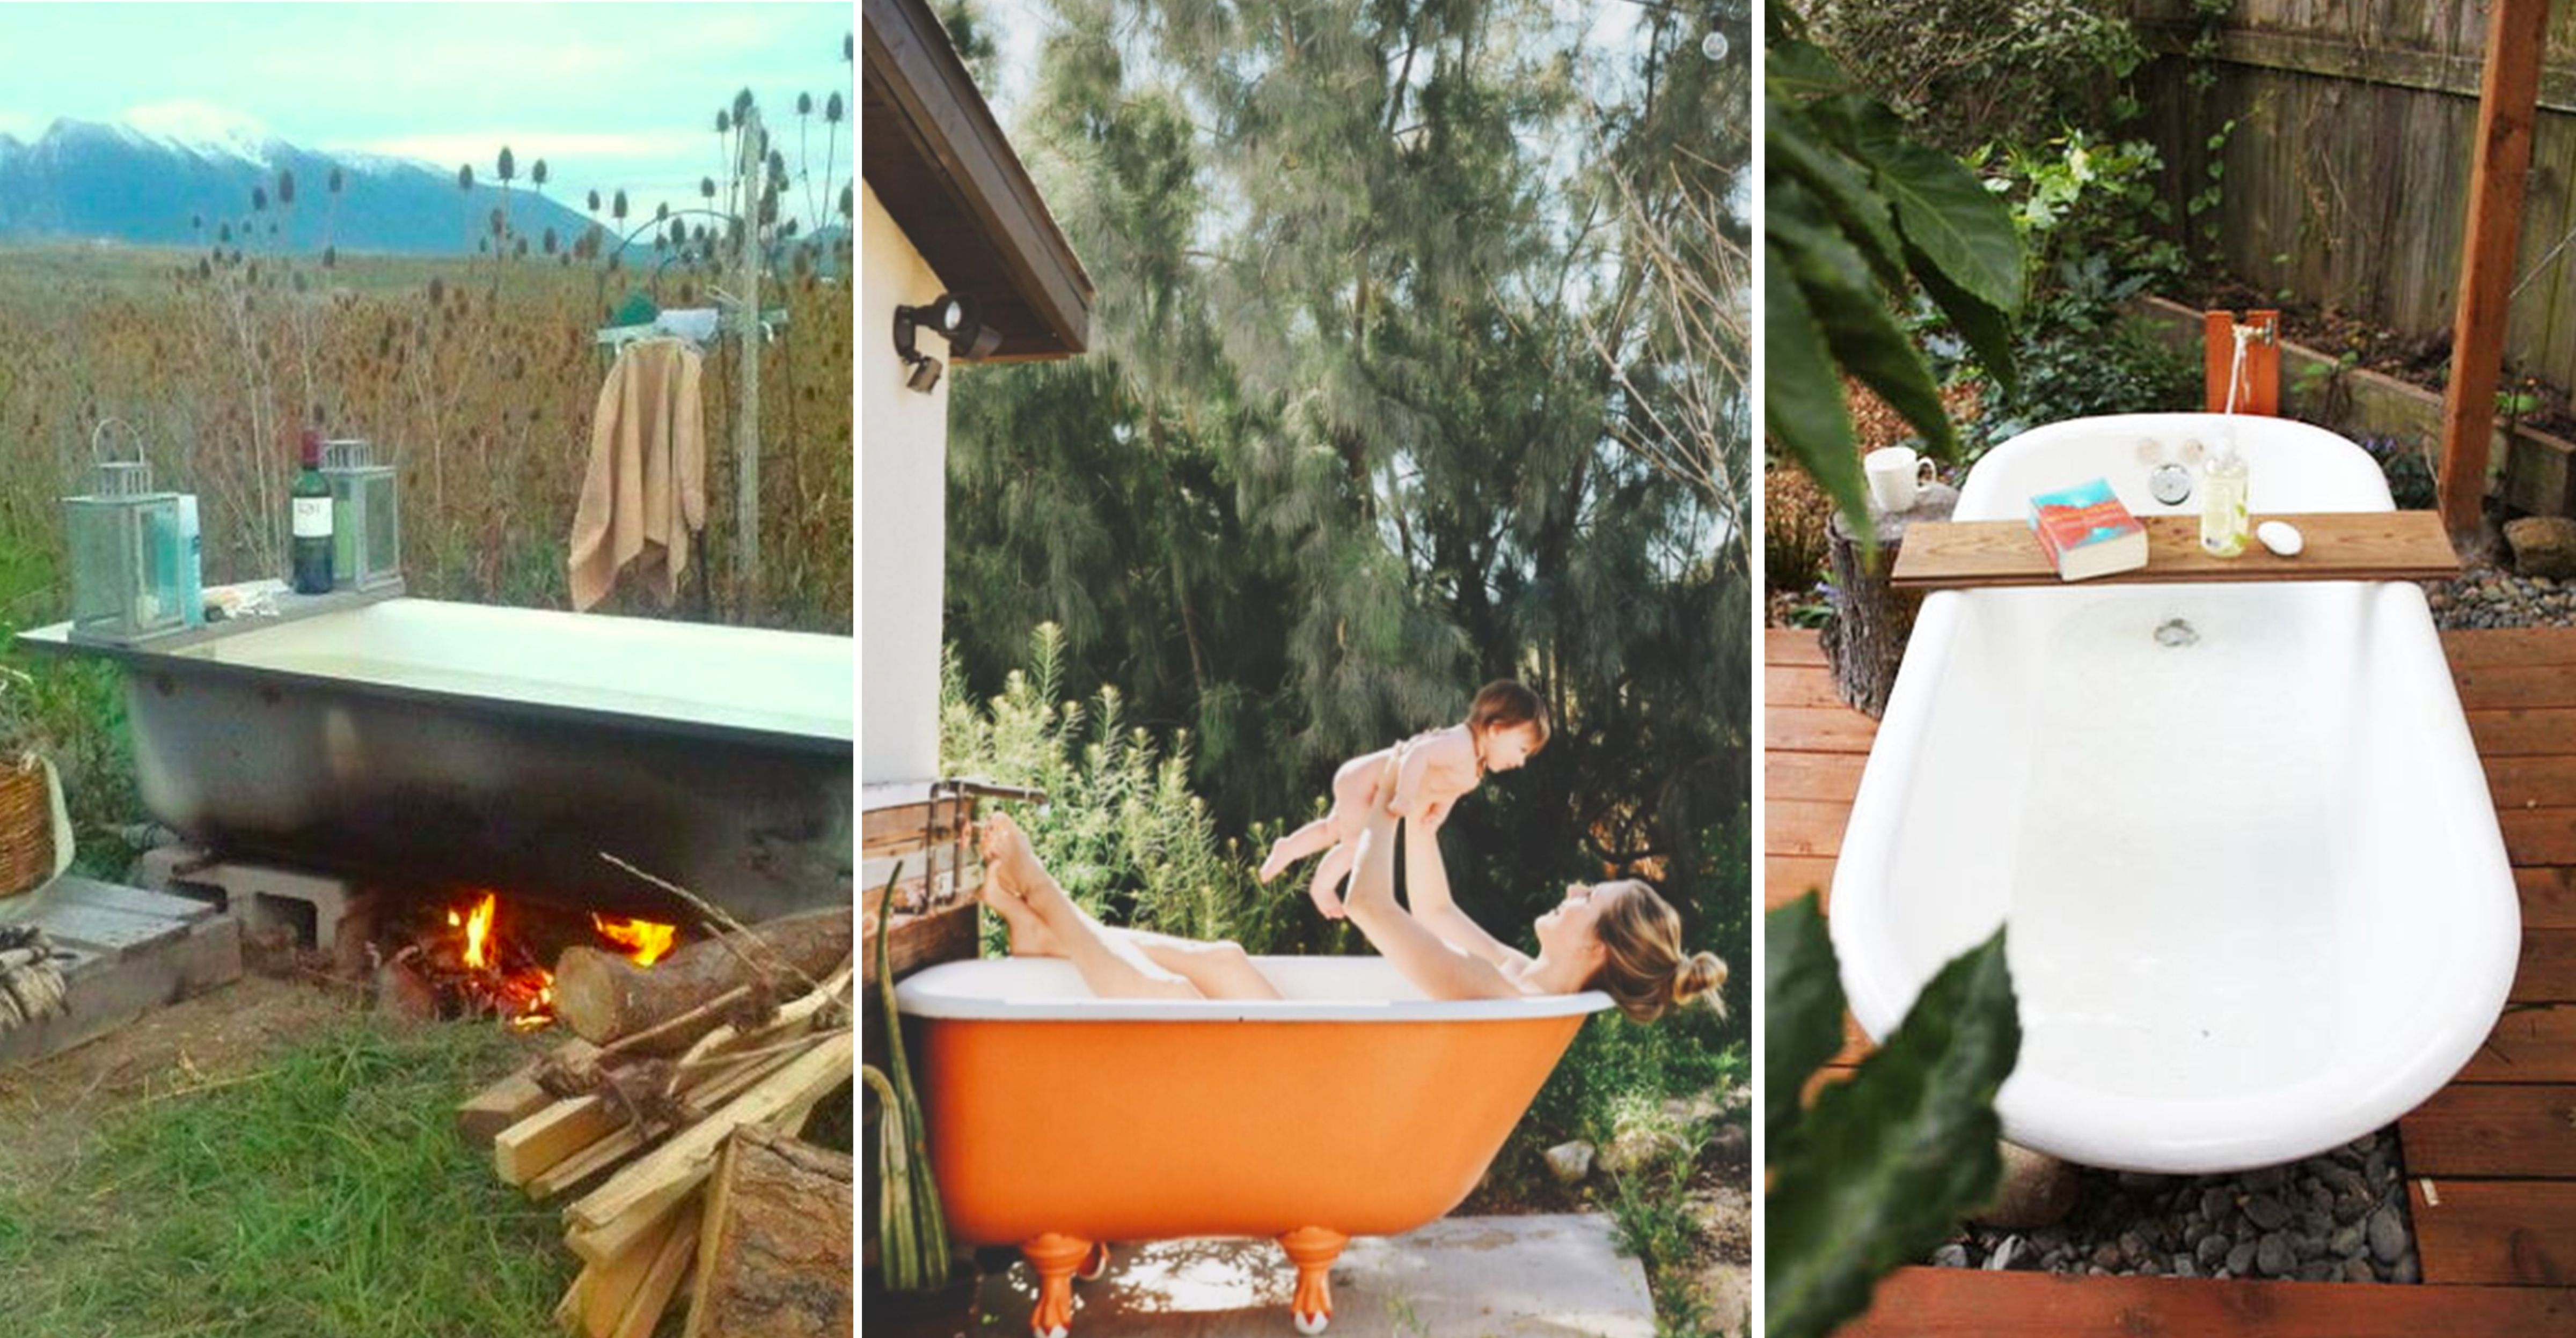 Backyard Bathtubs For Soaking Up The Great Outdoors